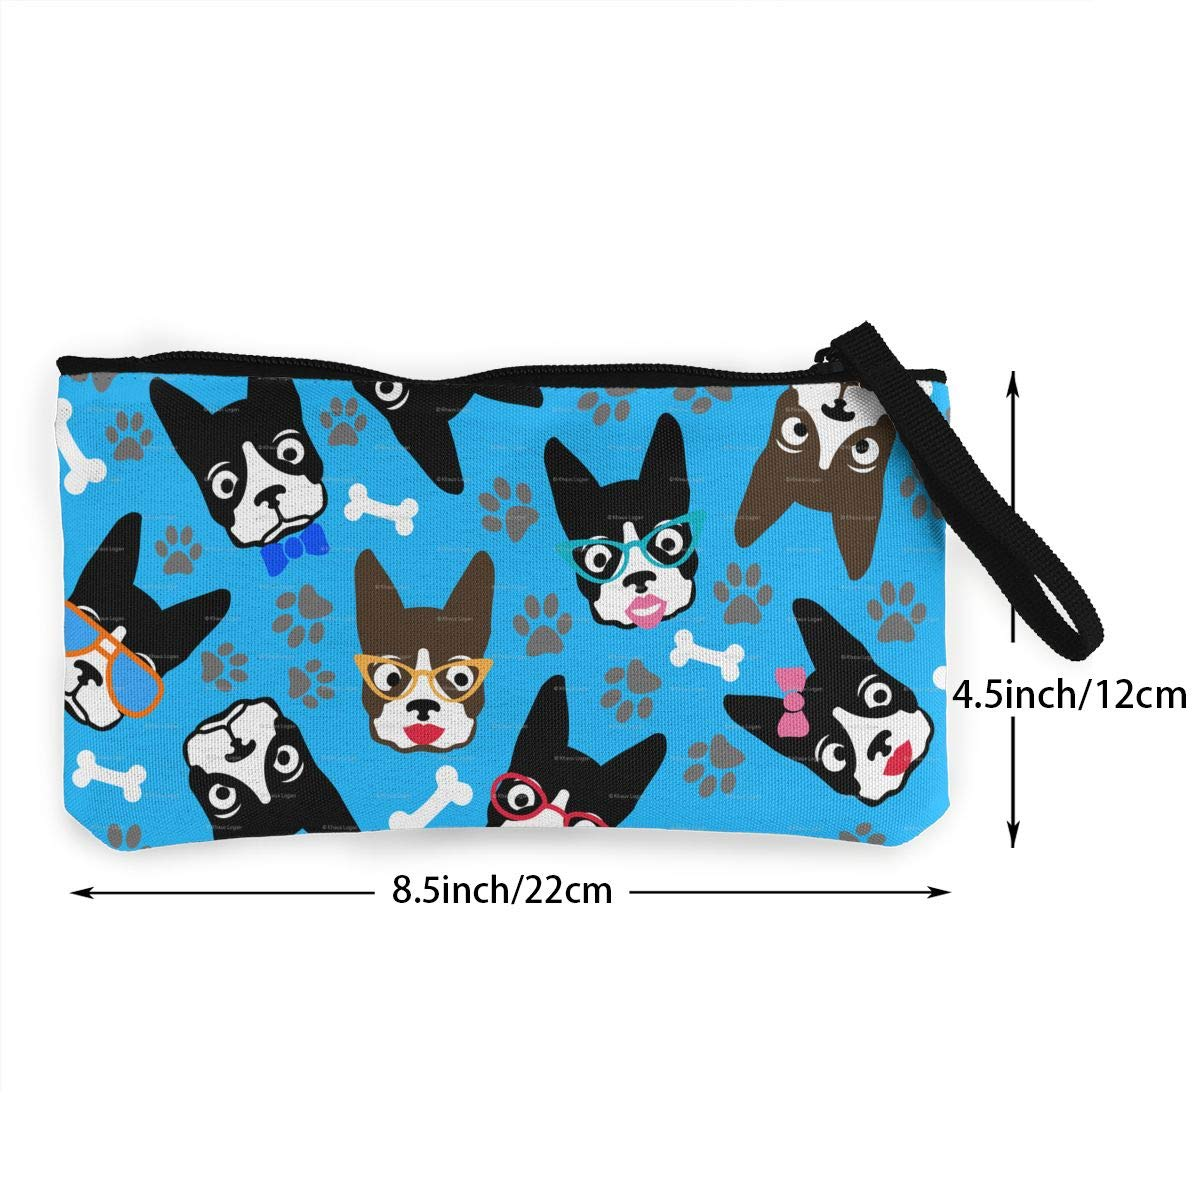 Make Up Bag Cellphone Bag With Handle DH14hjsdDEE Dog Boston Terrier Lover Funny Retro Dogs Zipper Canvas Coin Purse Wallet